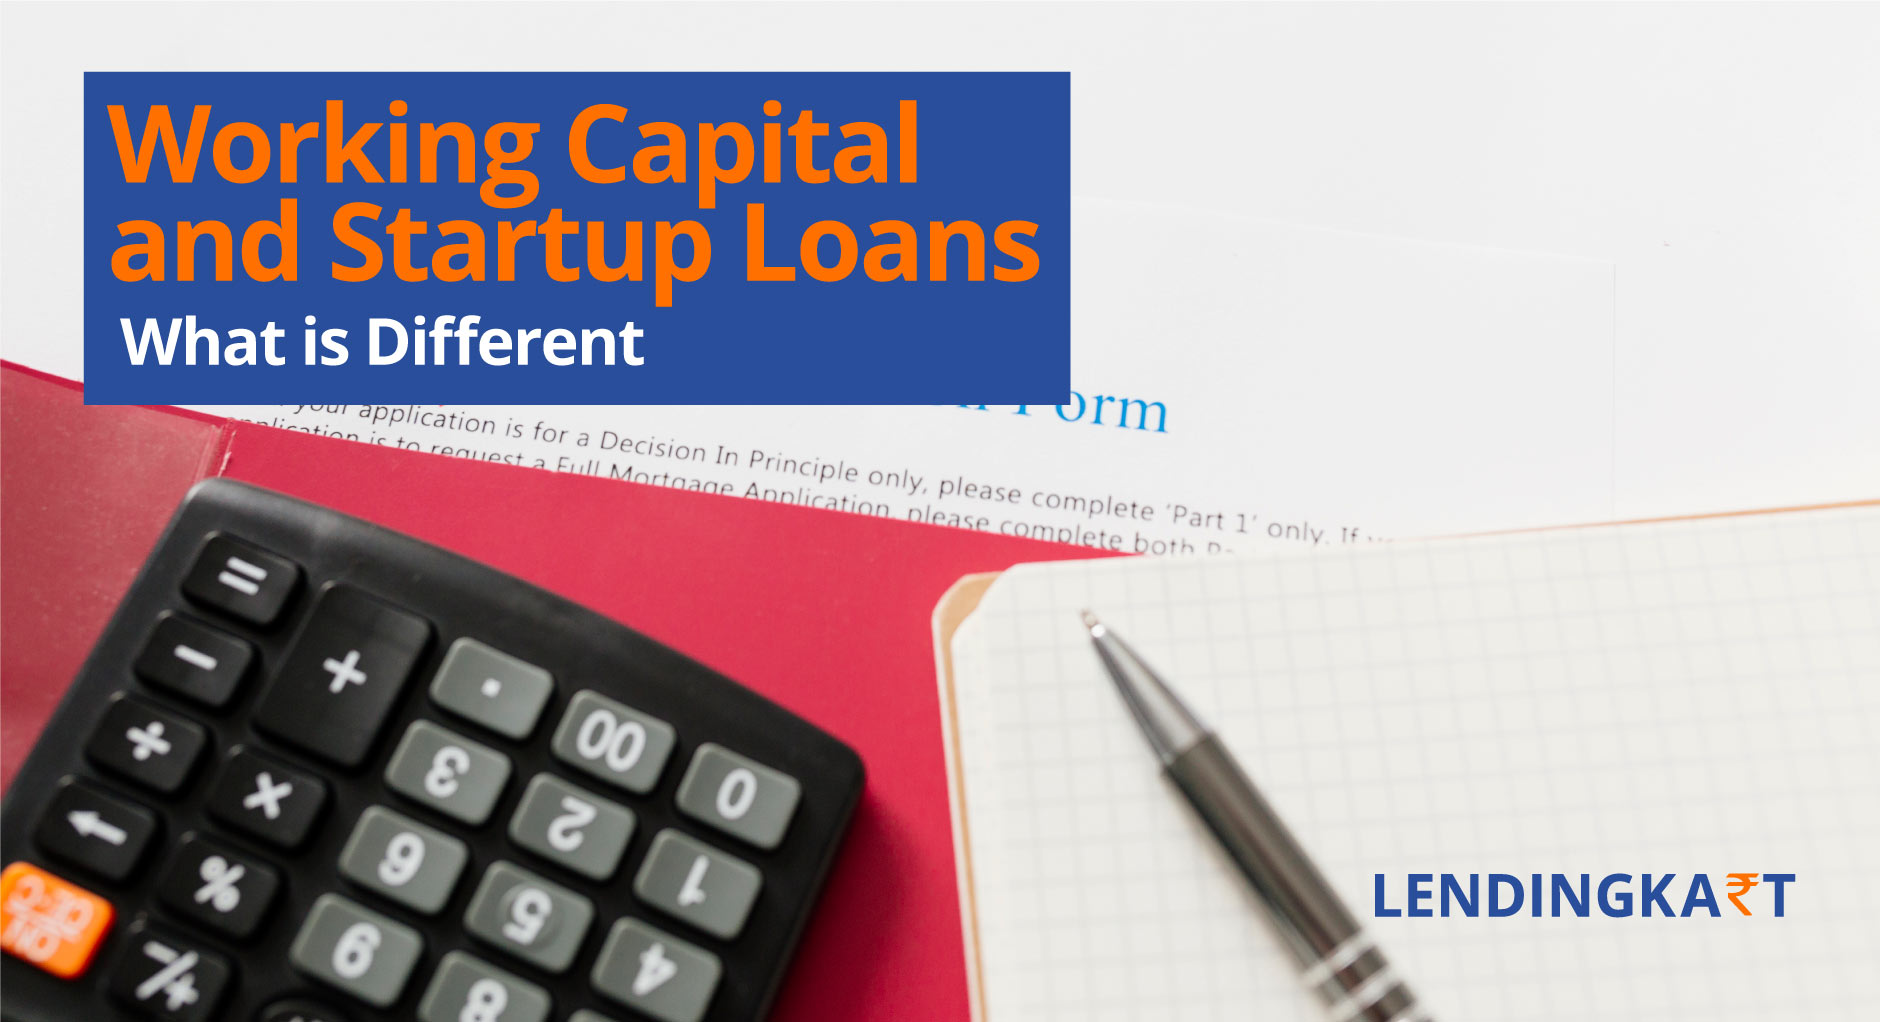 Difference between Working Capital and Startup Loans